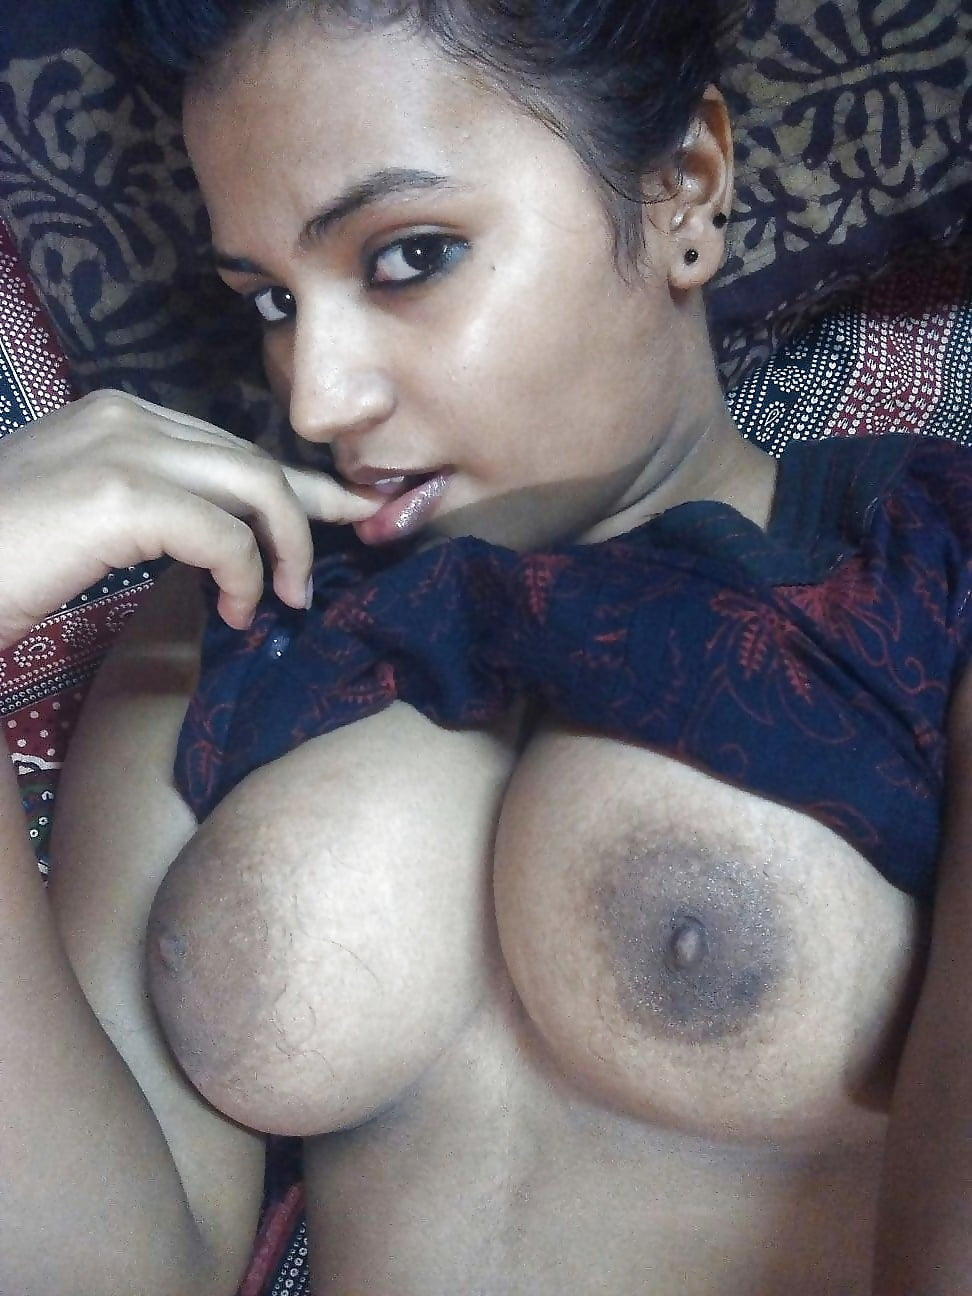 Big Boobs Tamil Actress Nude